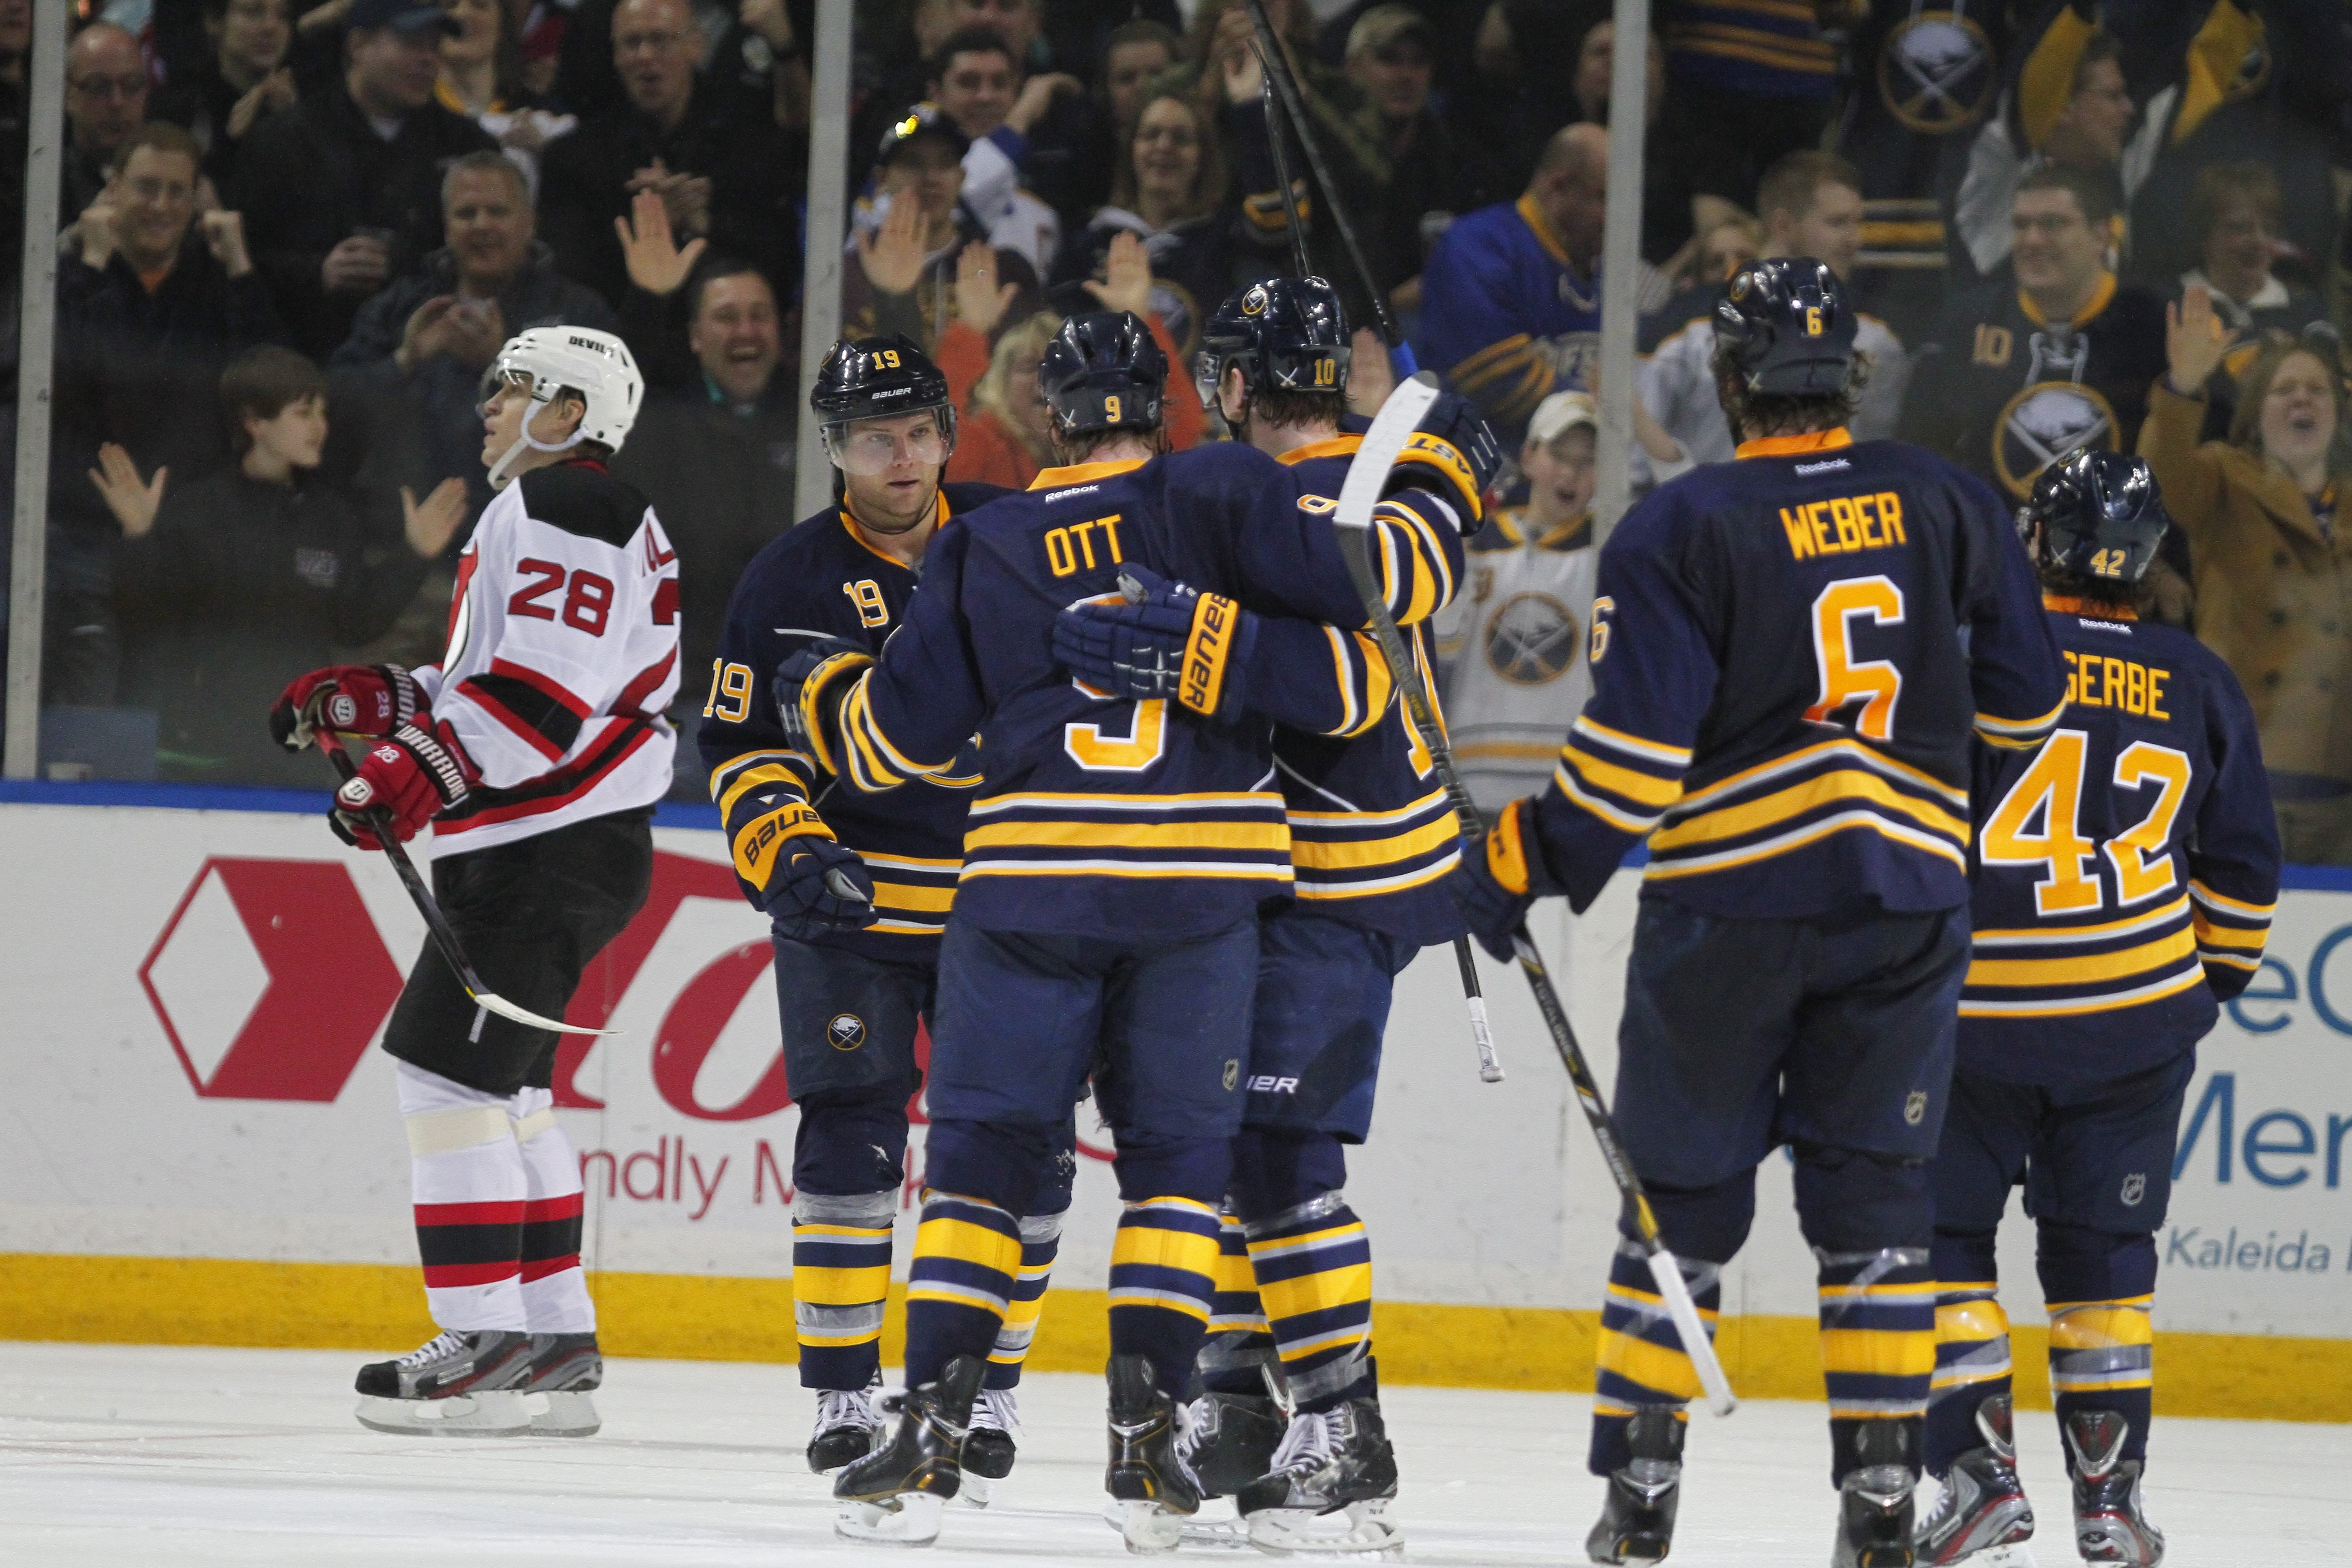 Buffalo's Steve Ott celebrates his goal that gave the Sabres a 2-1 lead in the second period.